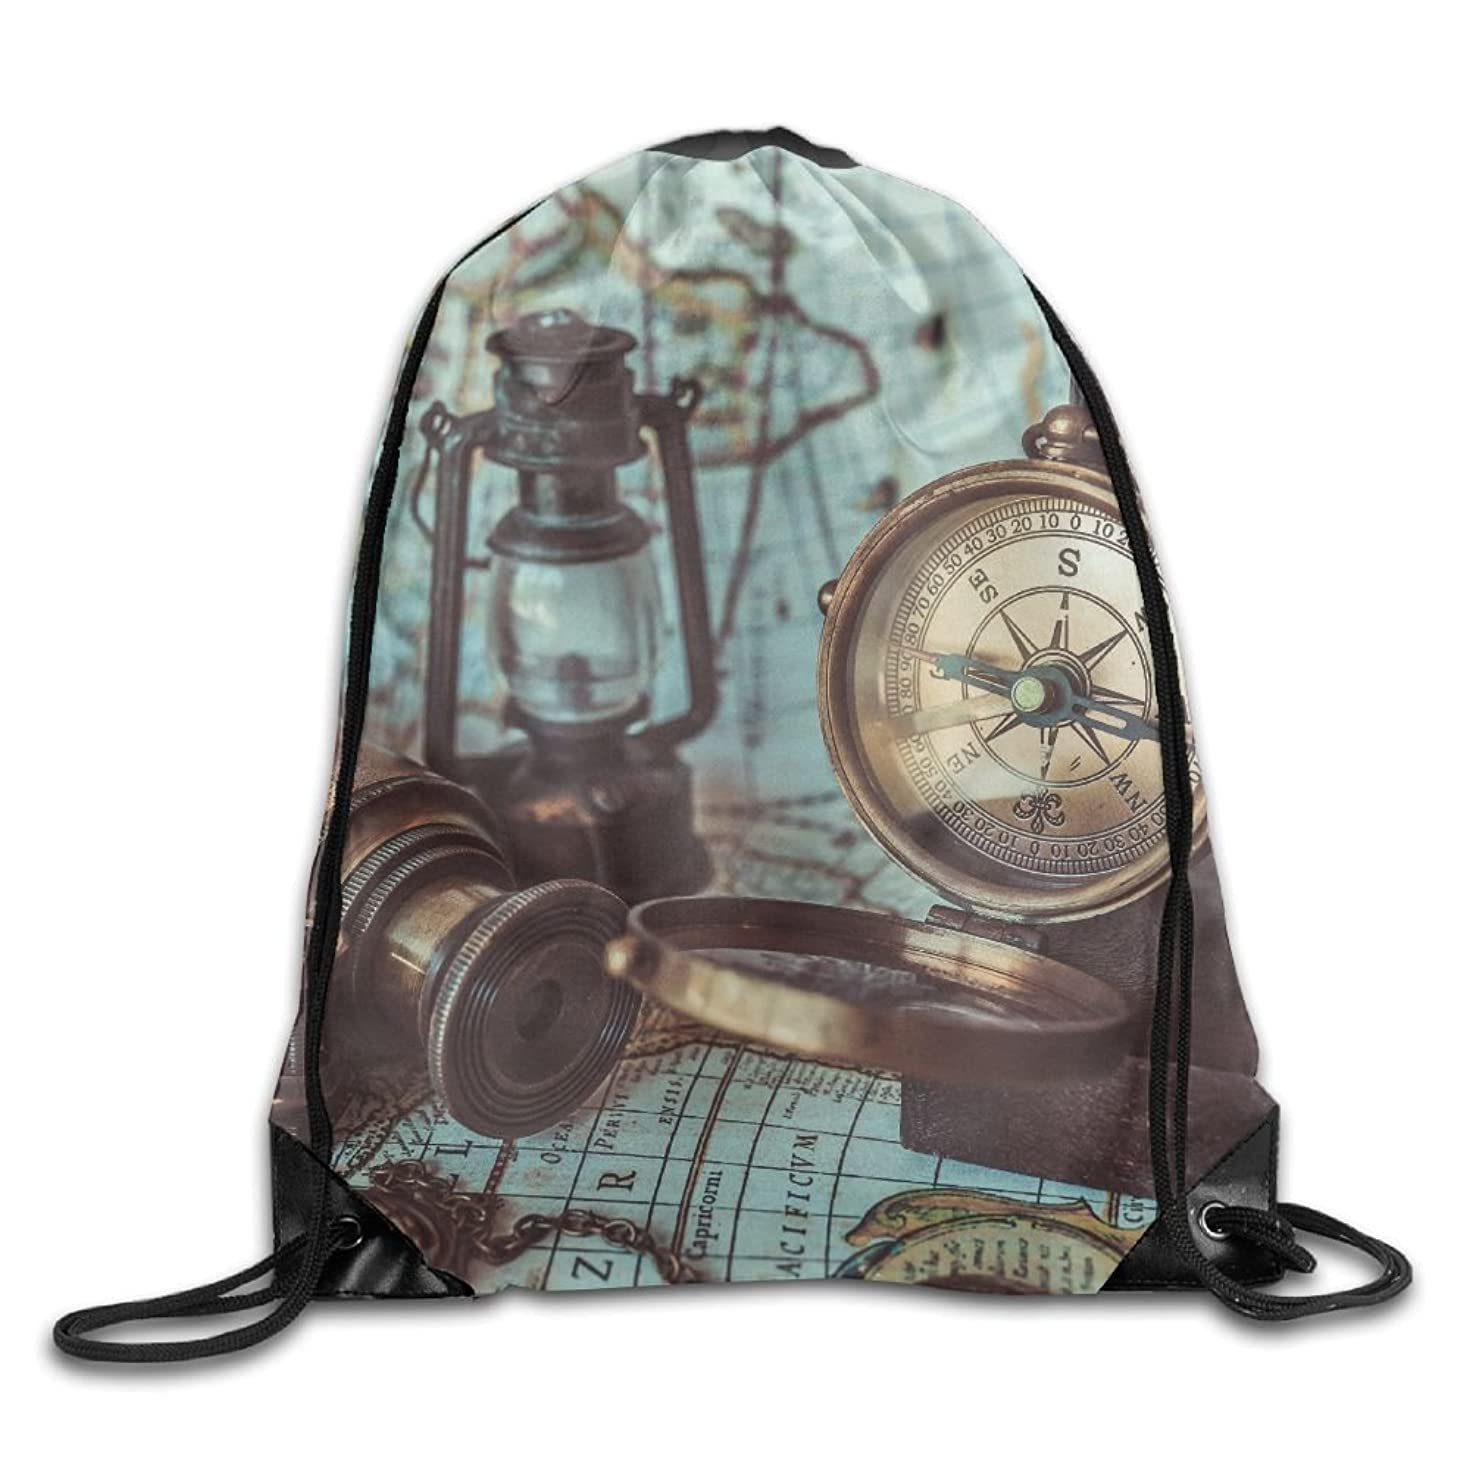 Yishuo Antique Old Pirate Rare Items Collections Bronze Manually Rotation Compass Oil Lamp Binocular Drawstring Pack Beam Mouth Gym Sack Shoulder Bags For Men & Women